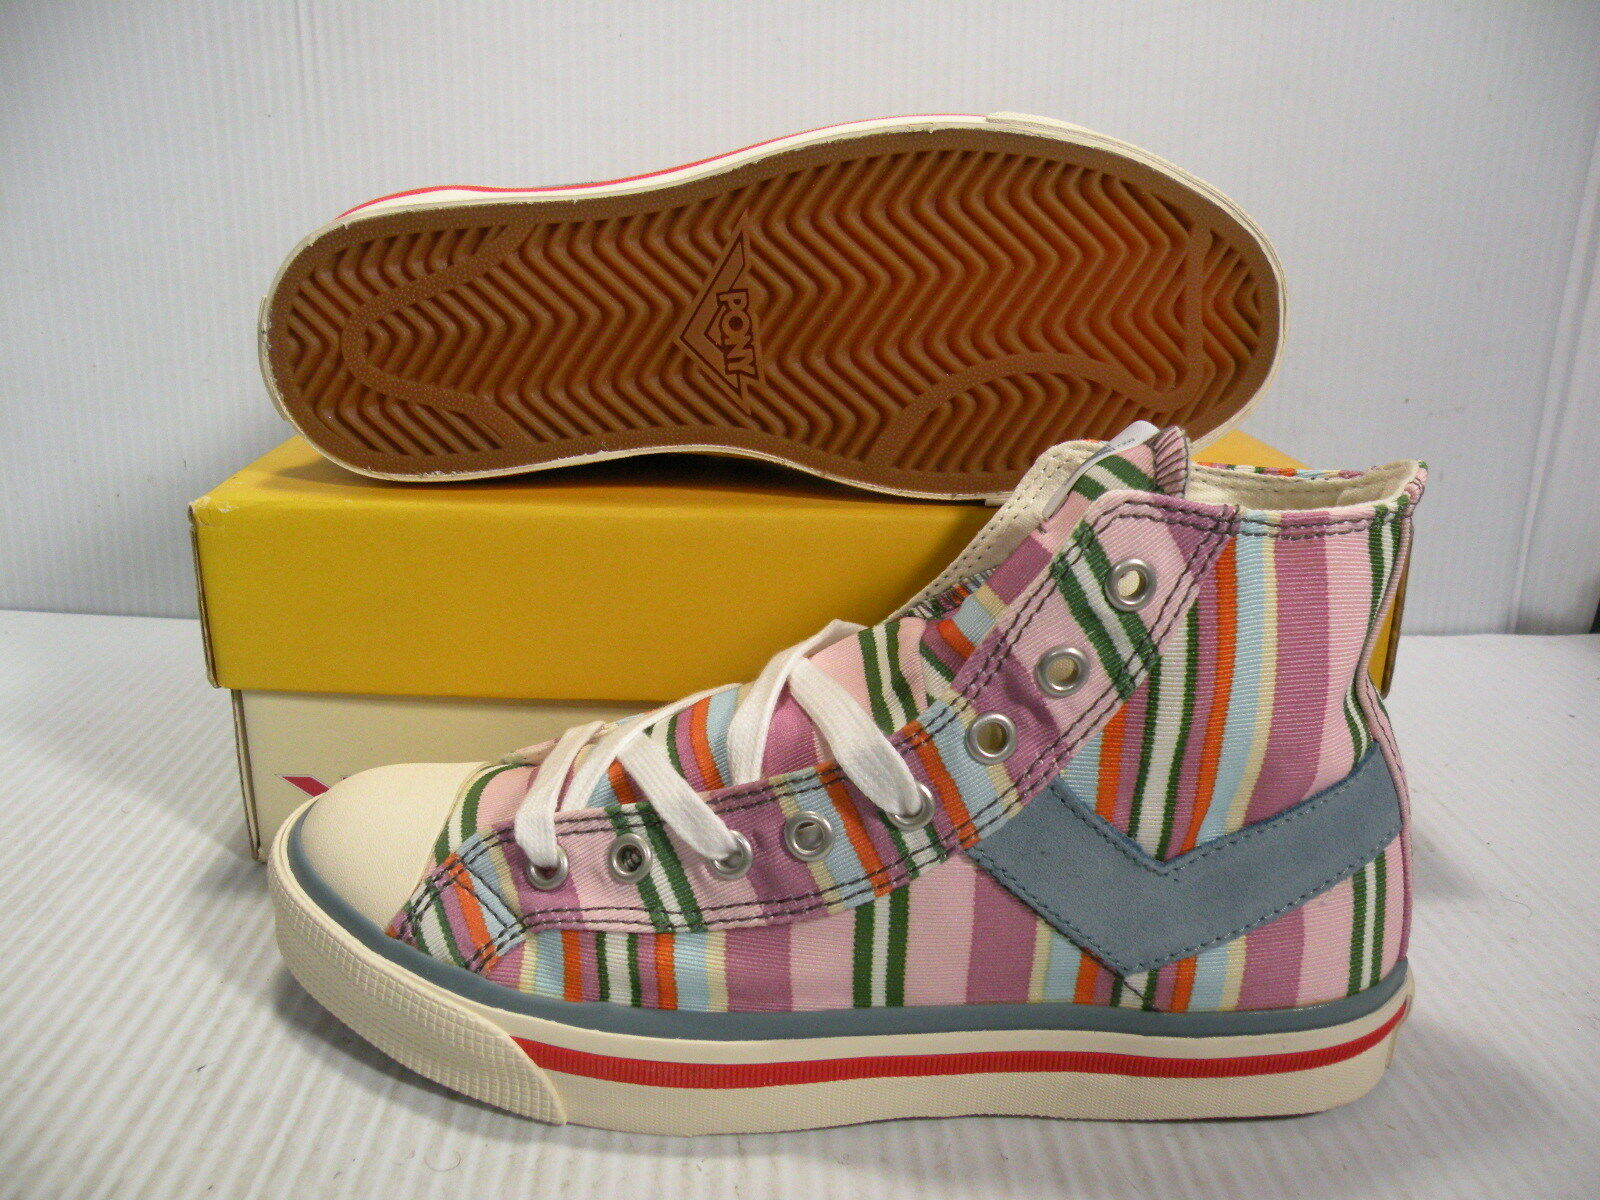 PONY SHOOTER '78 HIGH CHEVRON SNEAKERS WOMEN SHOES PINK MIX 1781 SIZE 6.5 NEW